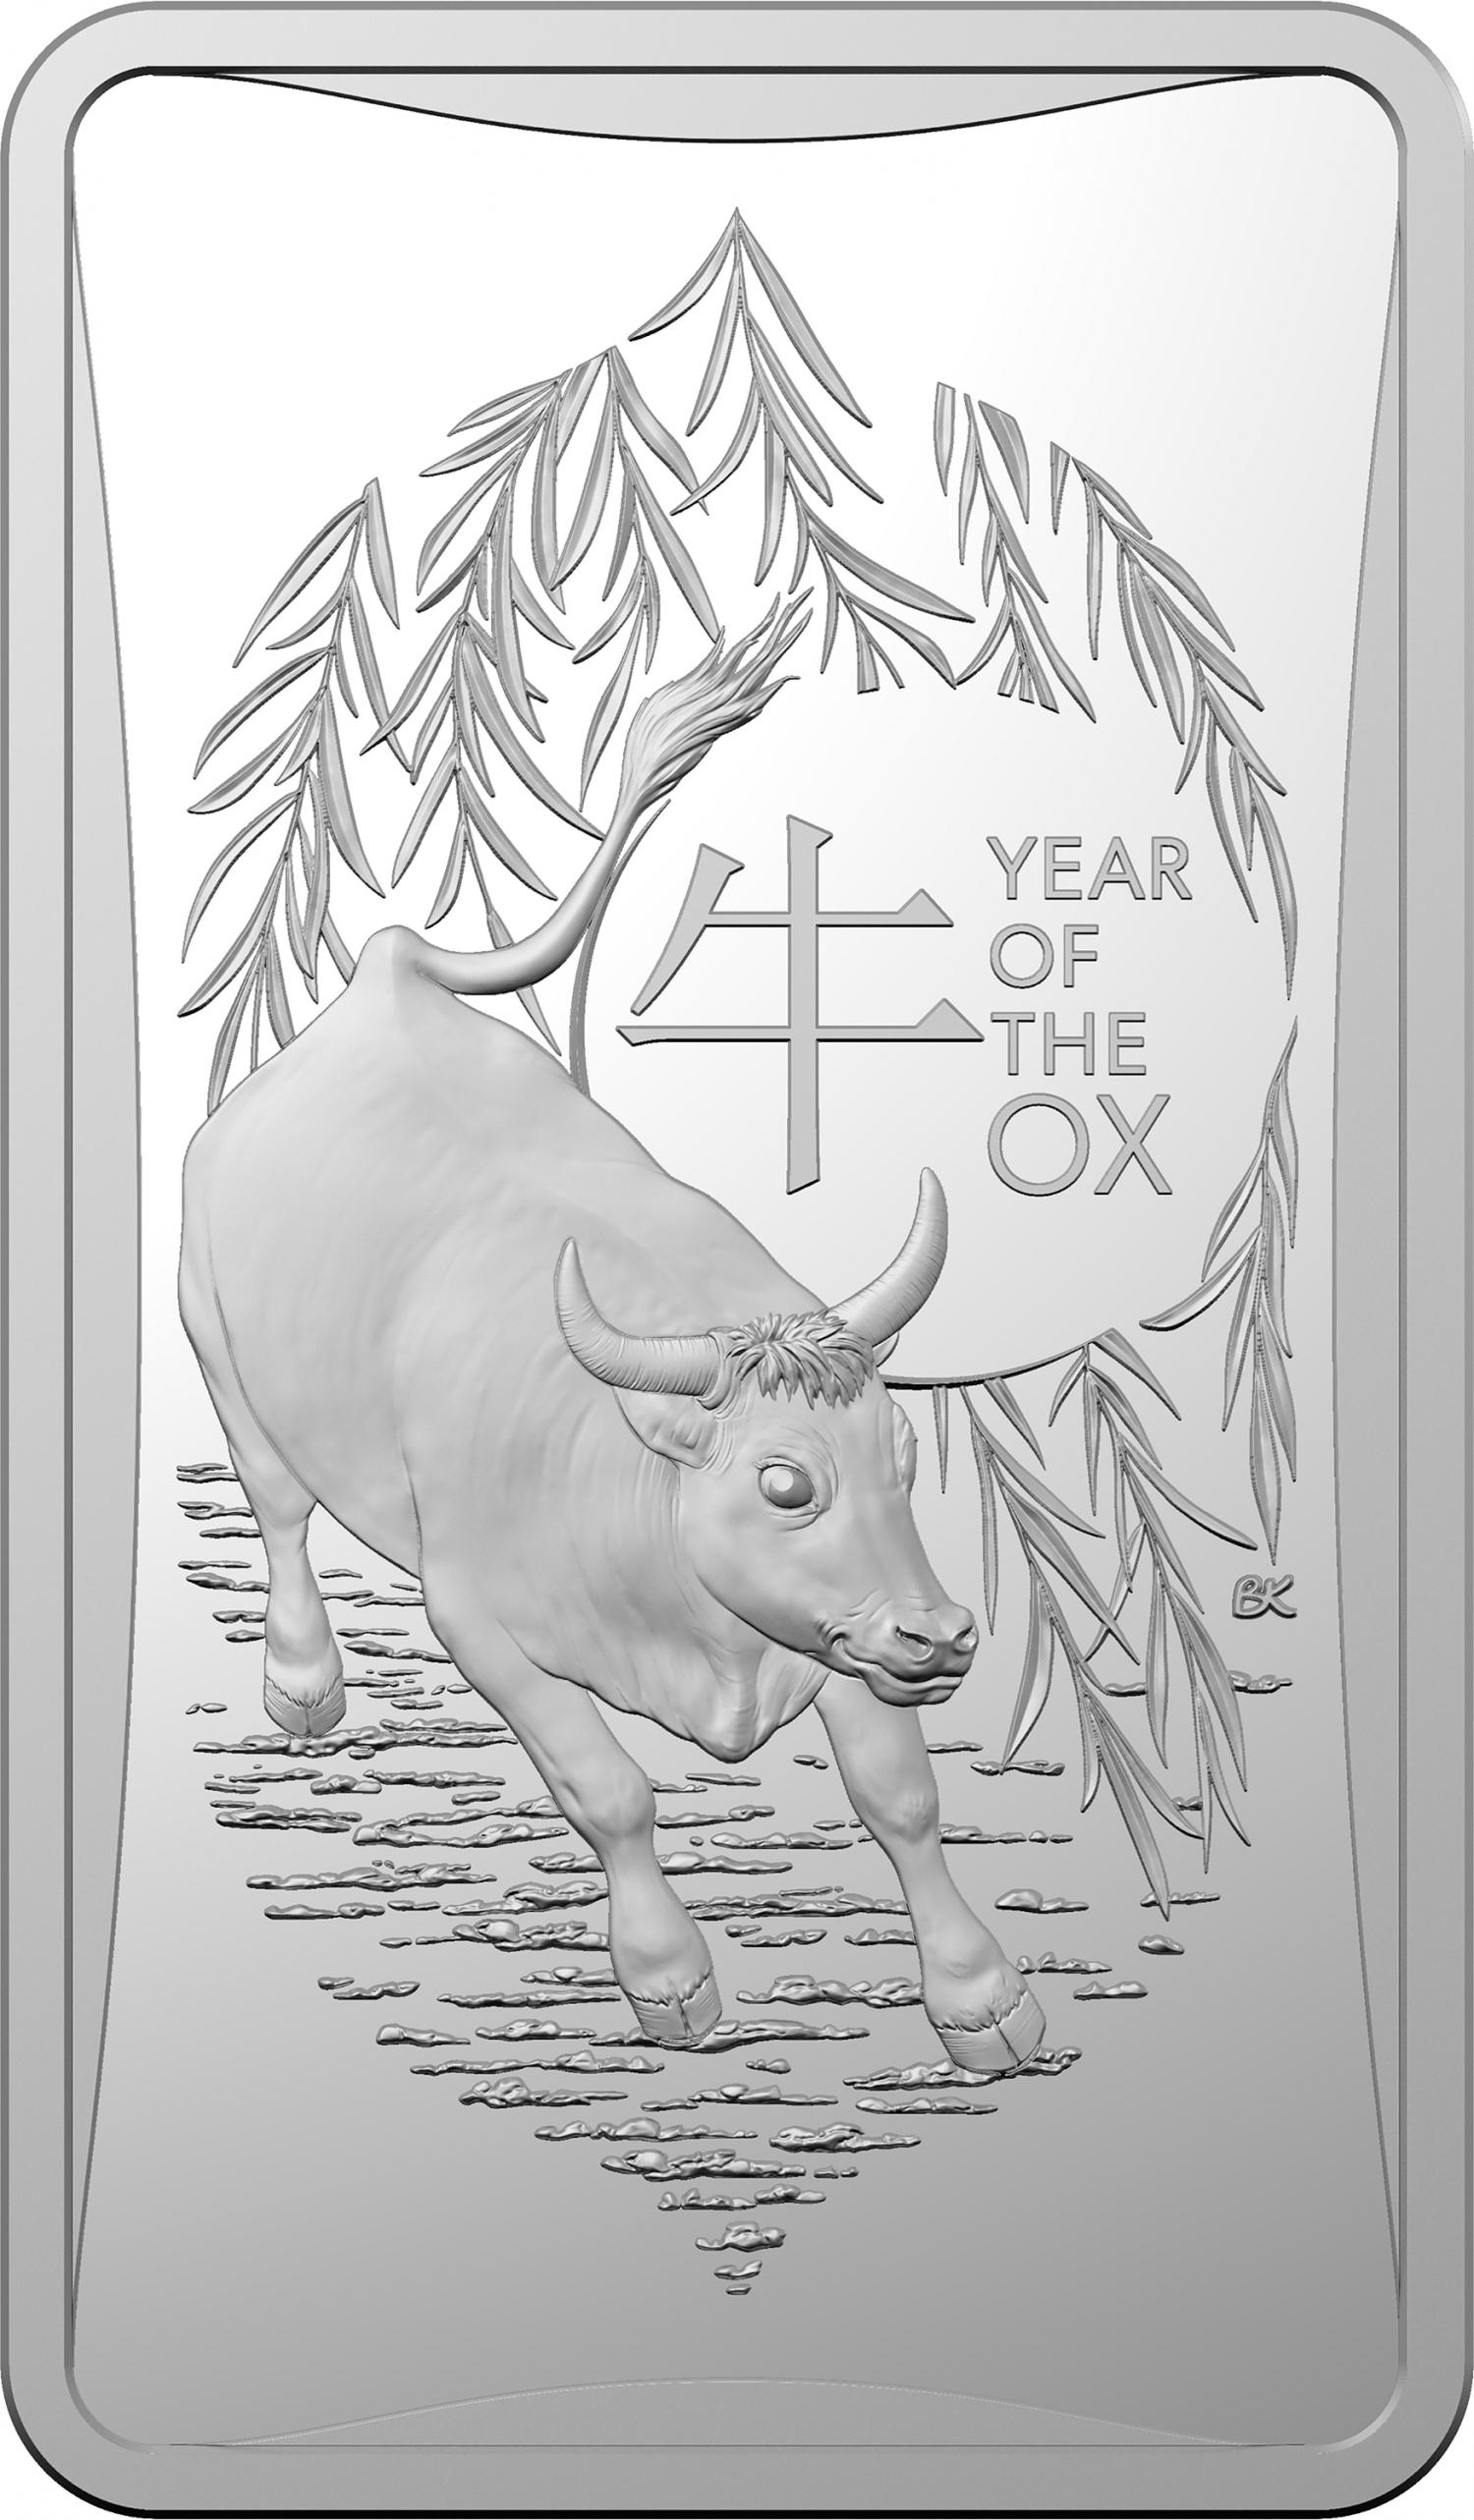 Thumbnail for 2021 Lunar Year of the Ox $1 Half oz Silver Frosted UNC INGOT in Box